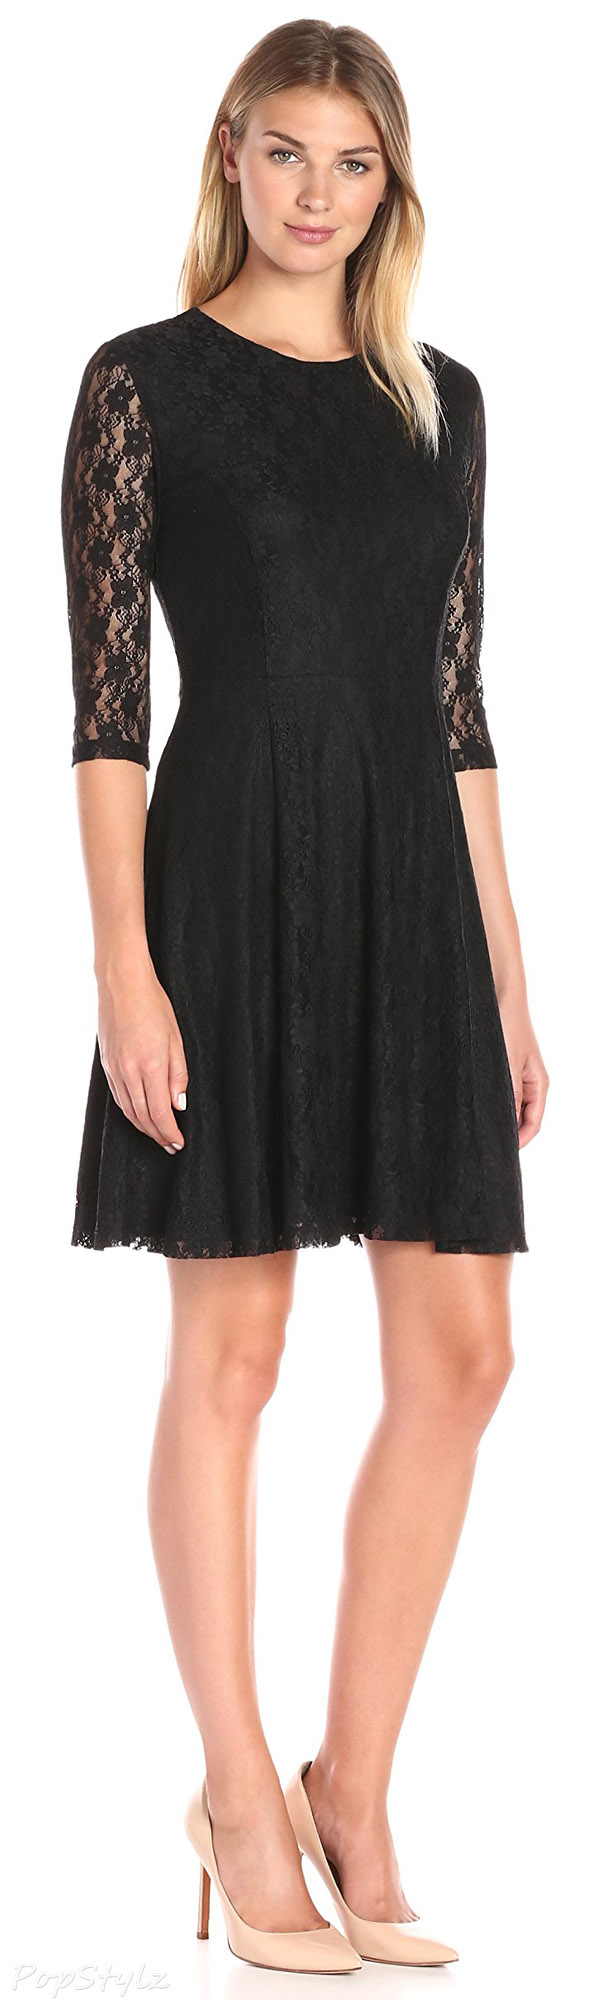 Lark & Ro Lace 3/4-Sleeve Knit Fit & Flare Dress